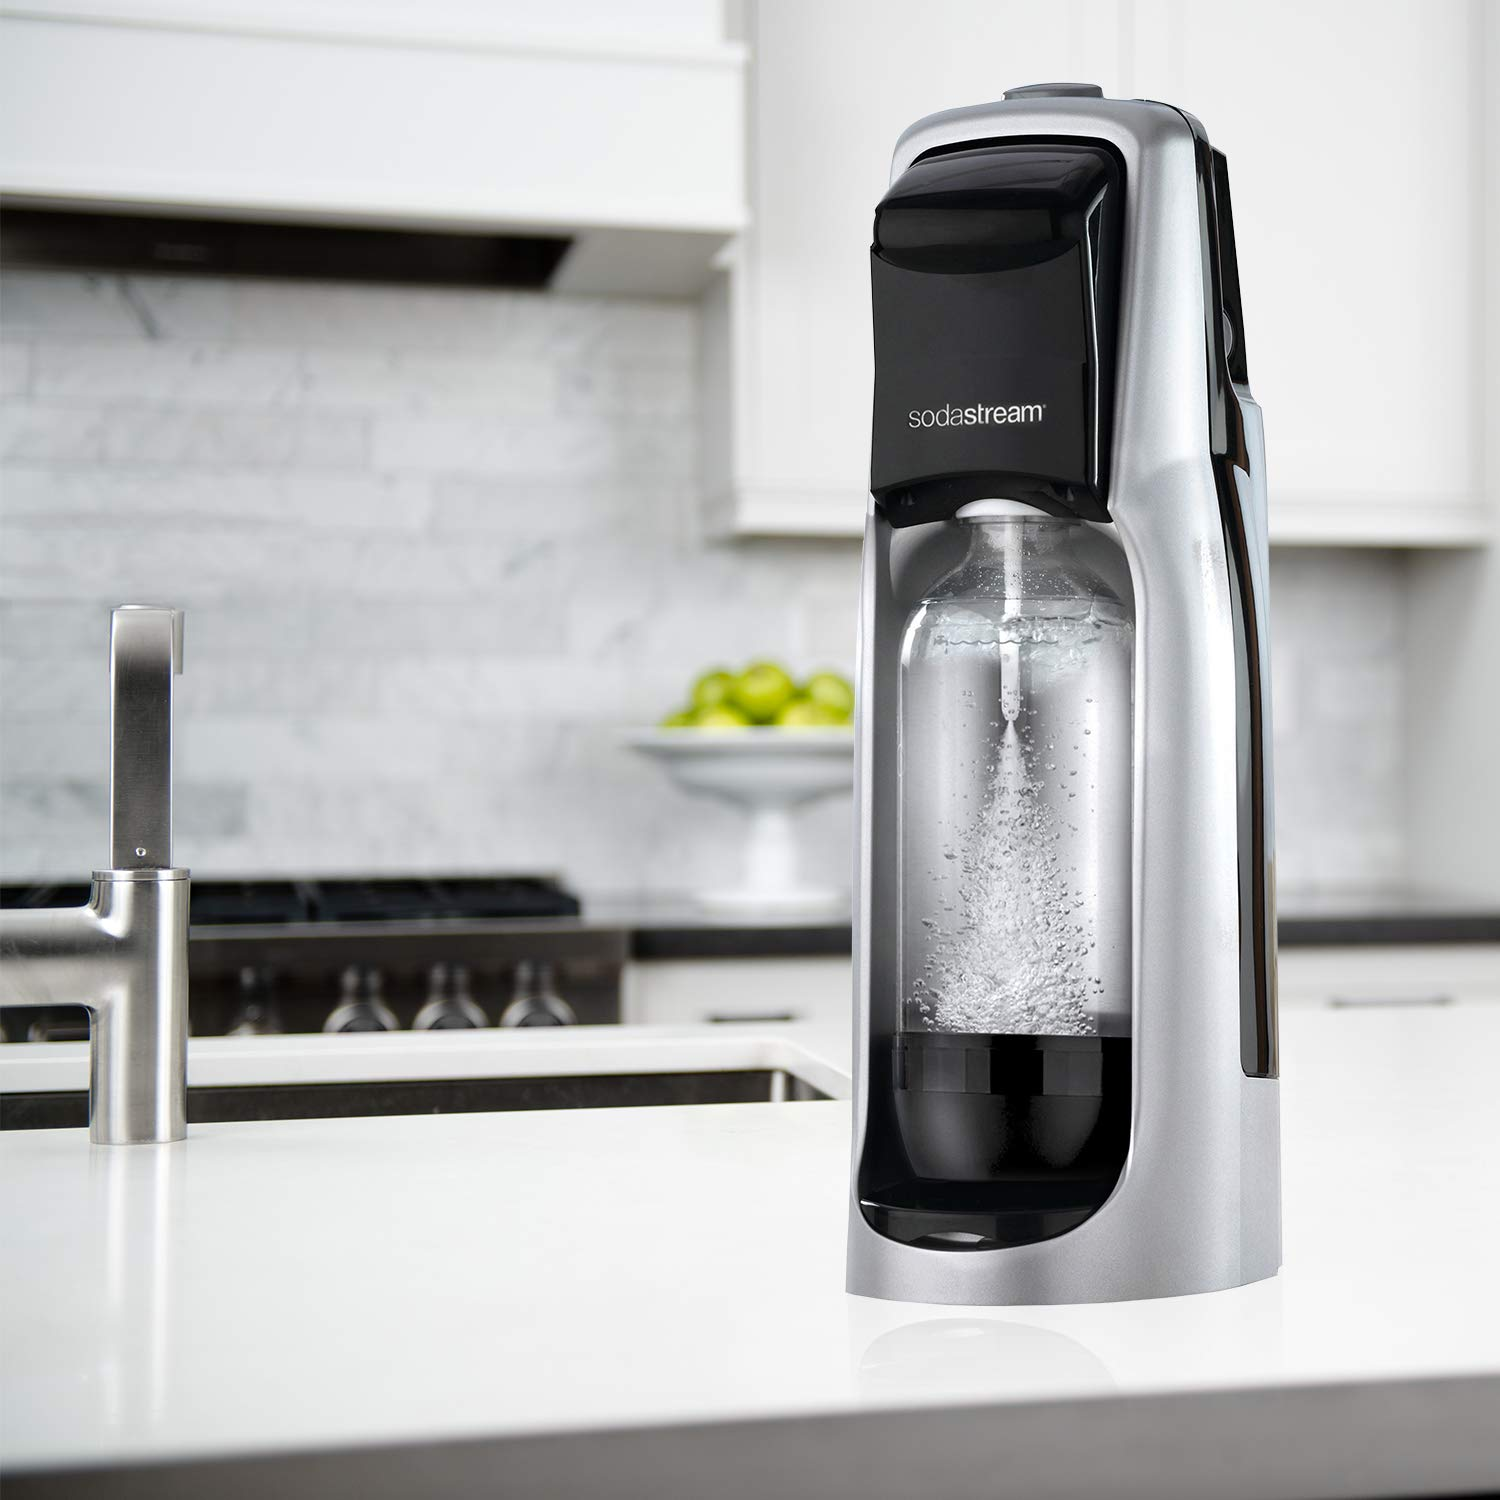 SodaStream Jet Sparkling Water Maker, Carbonator Not Included, Black/Silver